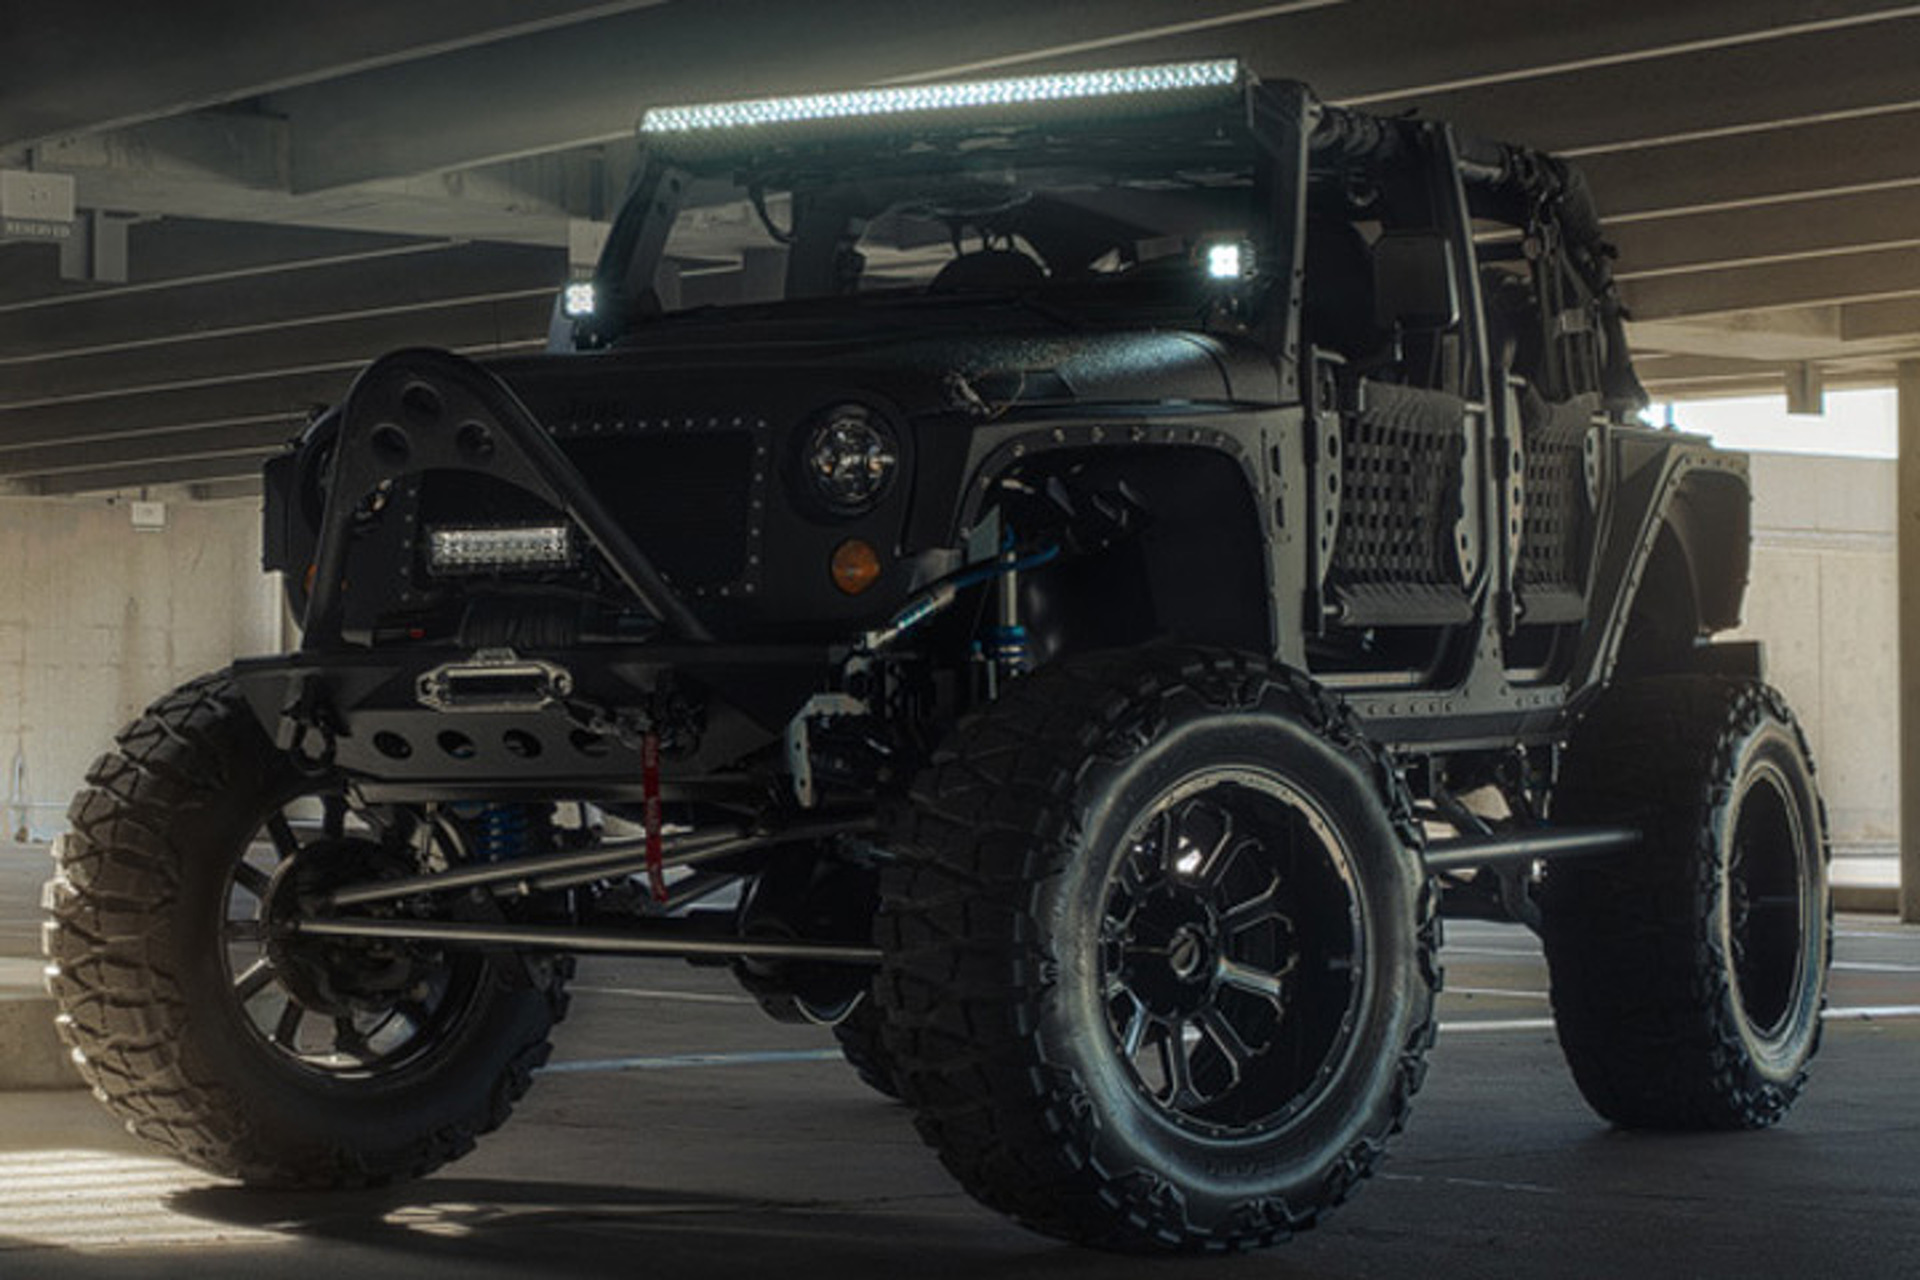 How To Build A 110 000 Full Metal Jacket Jeep